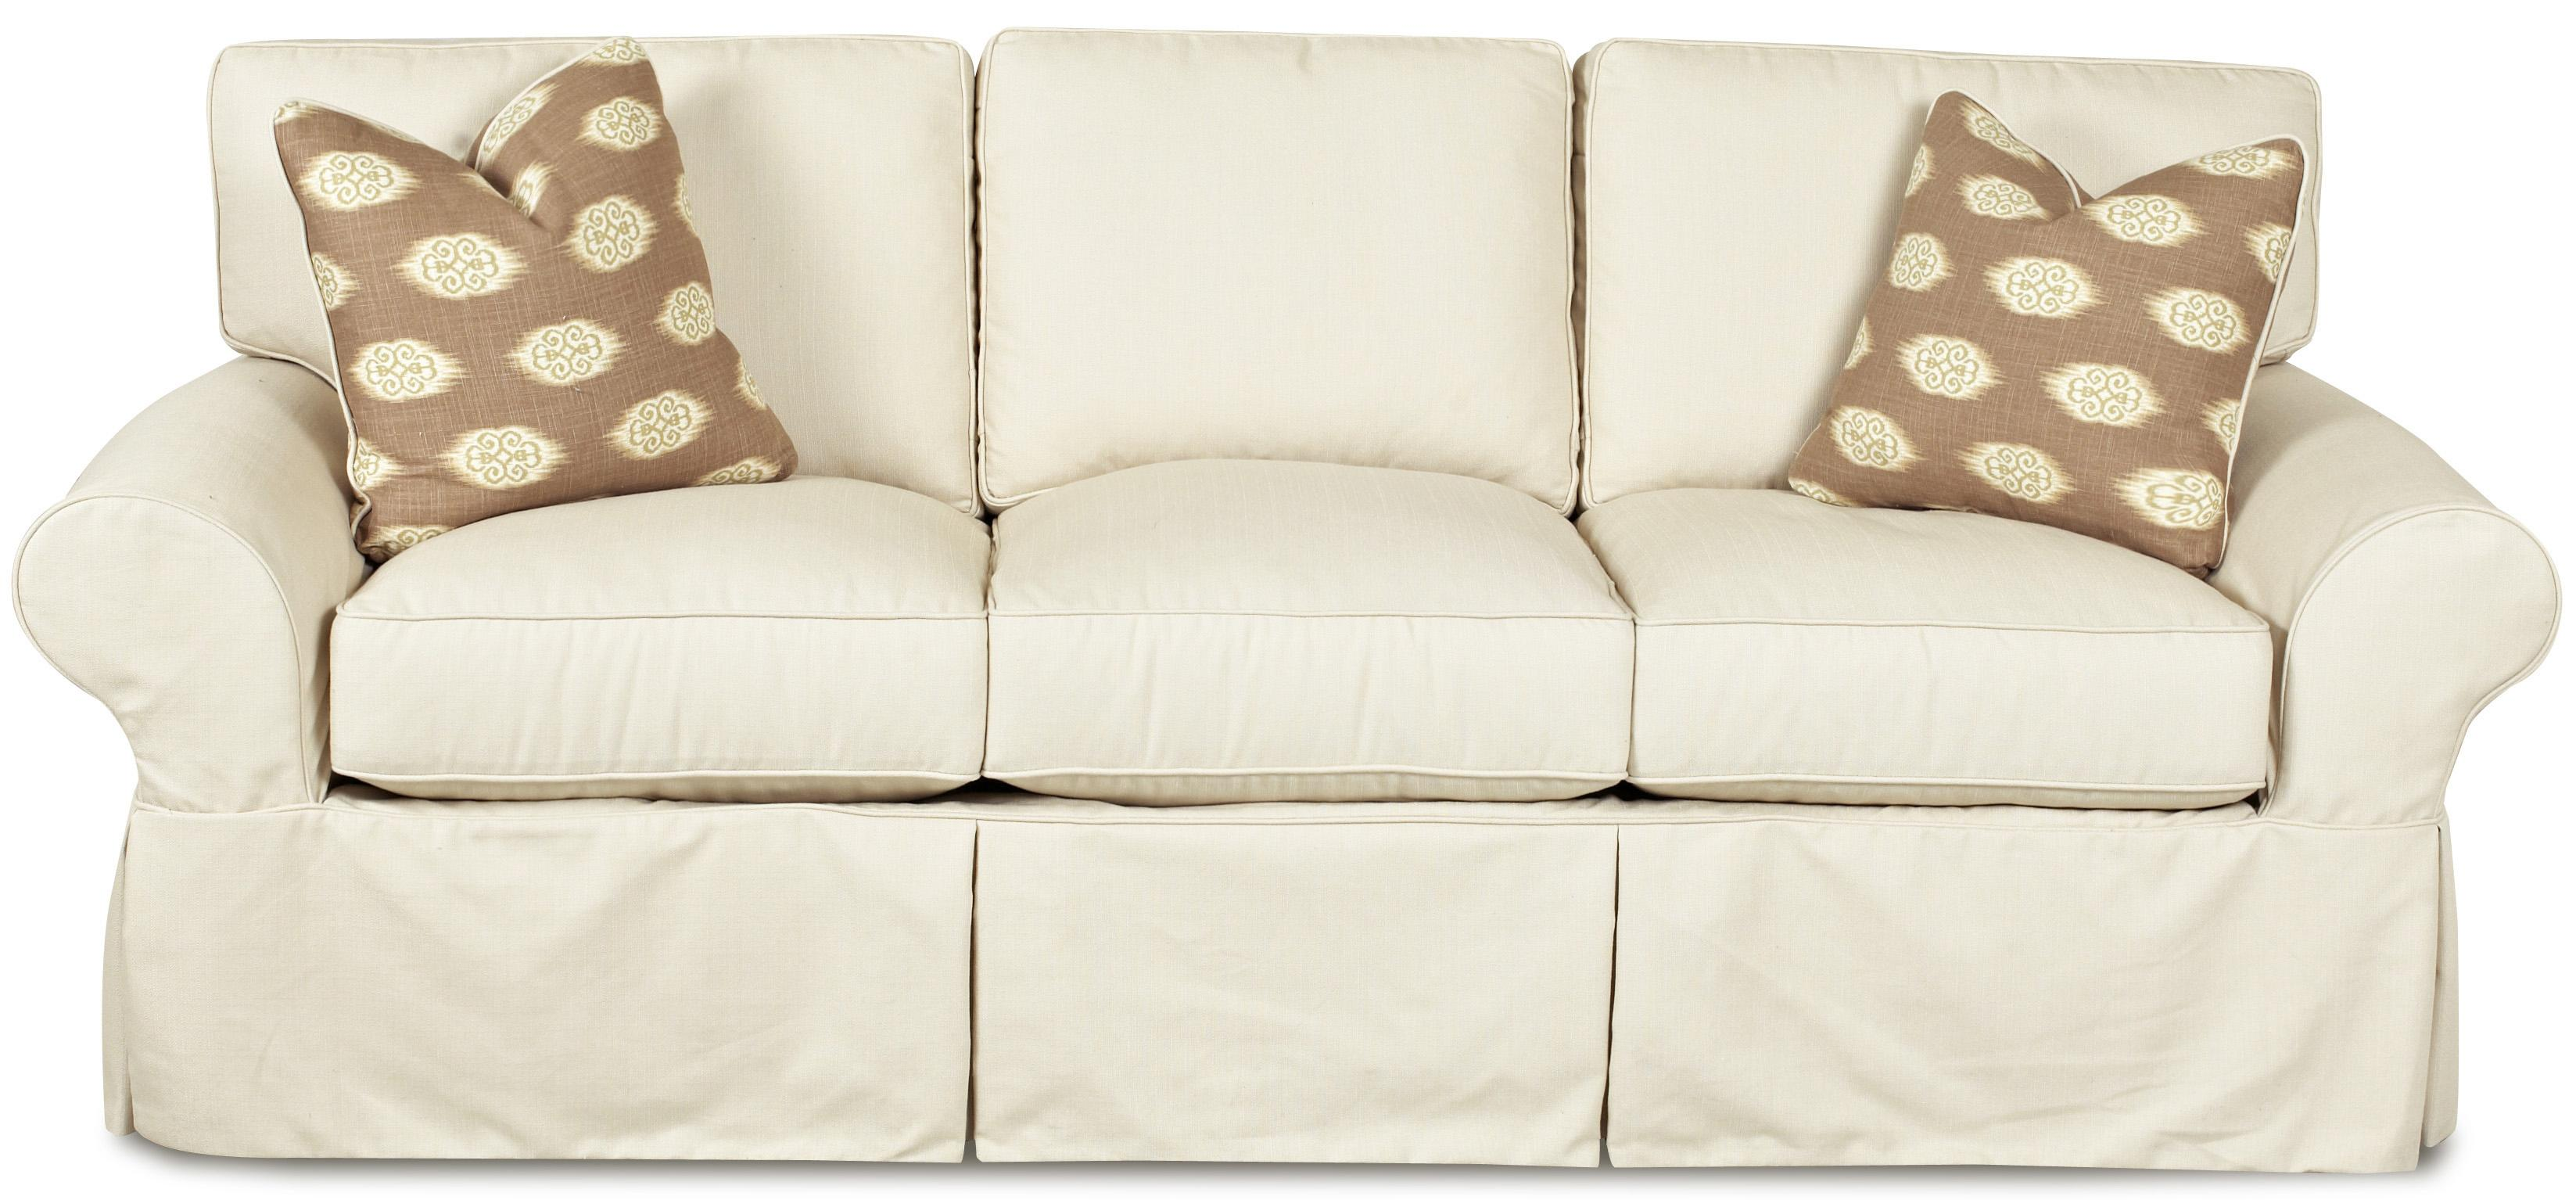 Klaussner Patterns Slipcovered Sofa With Rolled Arms And Tailored Skirt Johnny Janosik Sofas